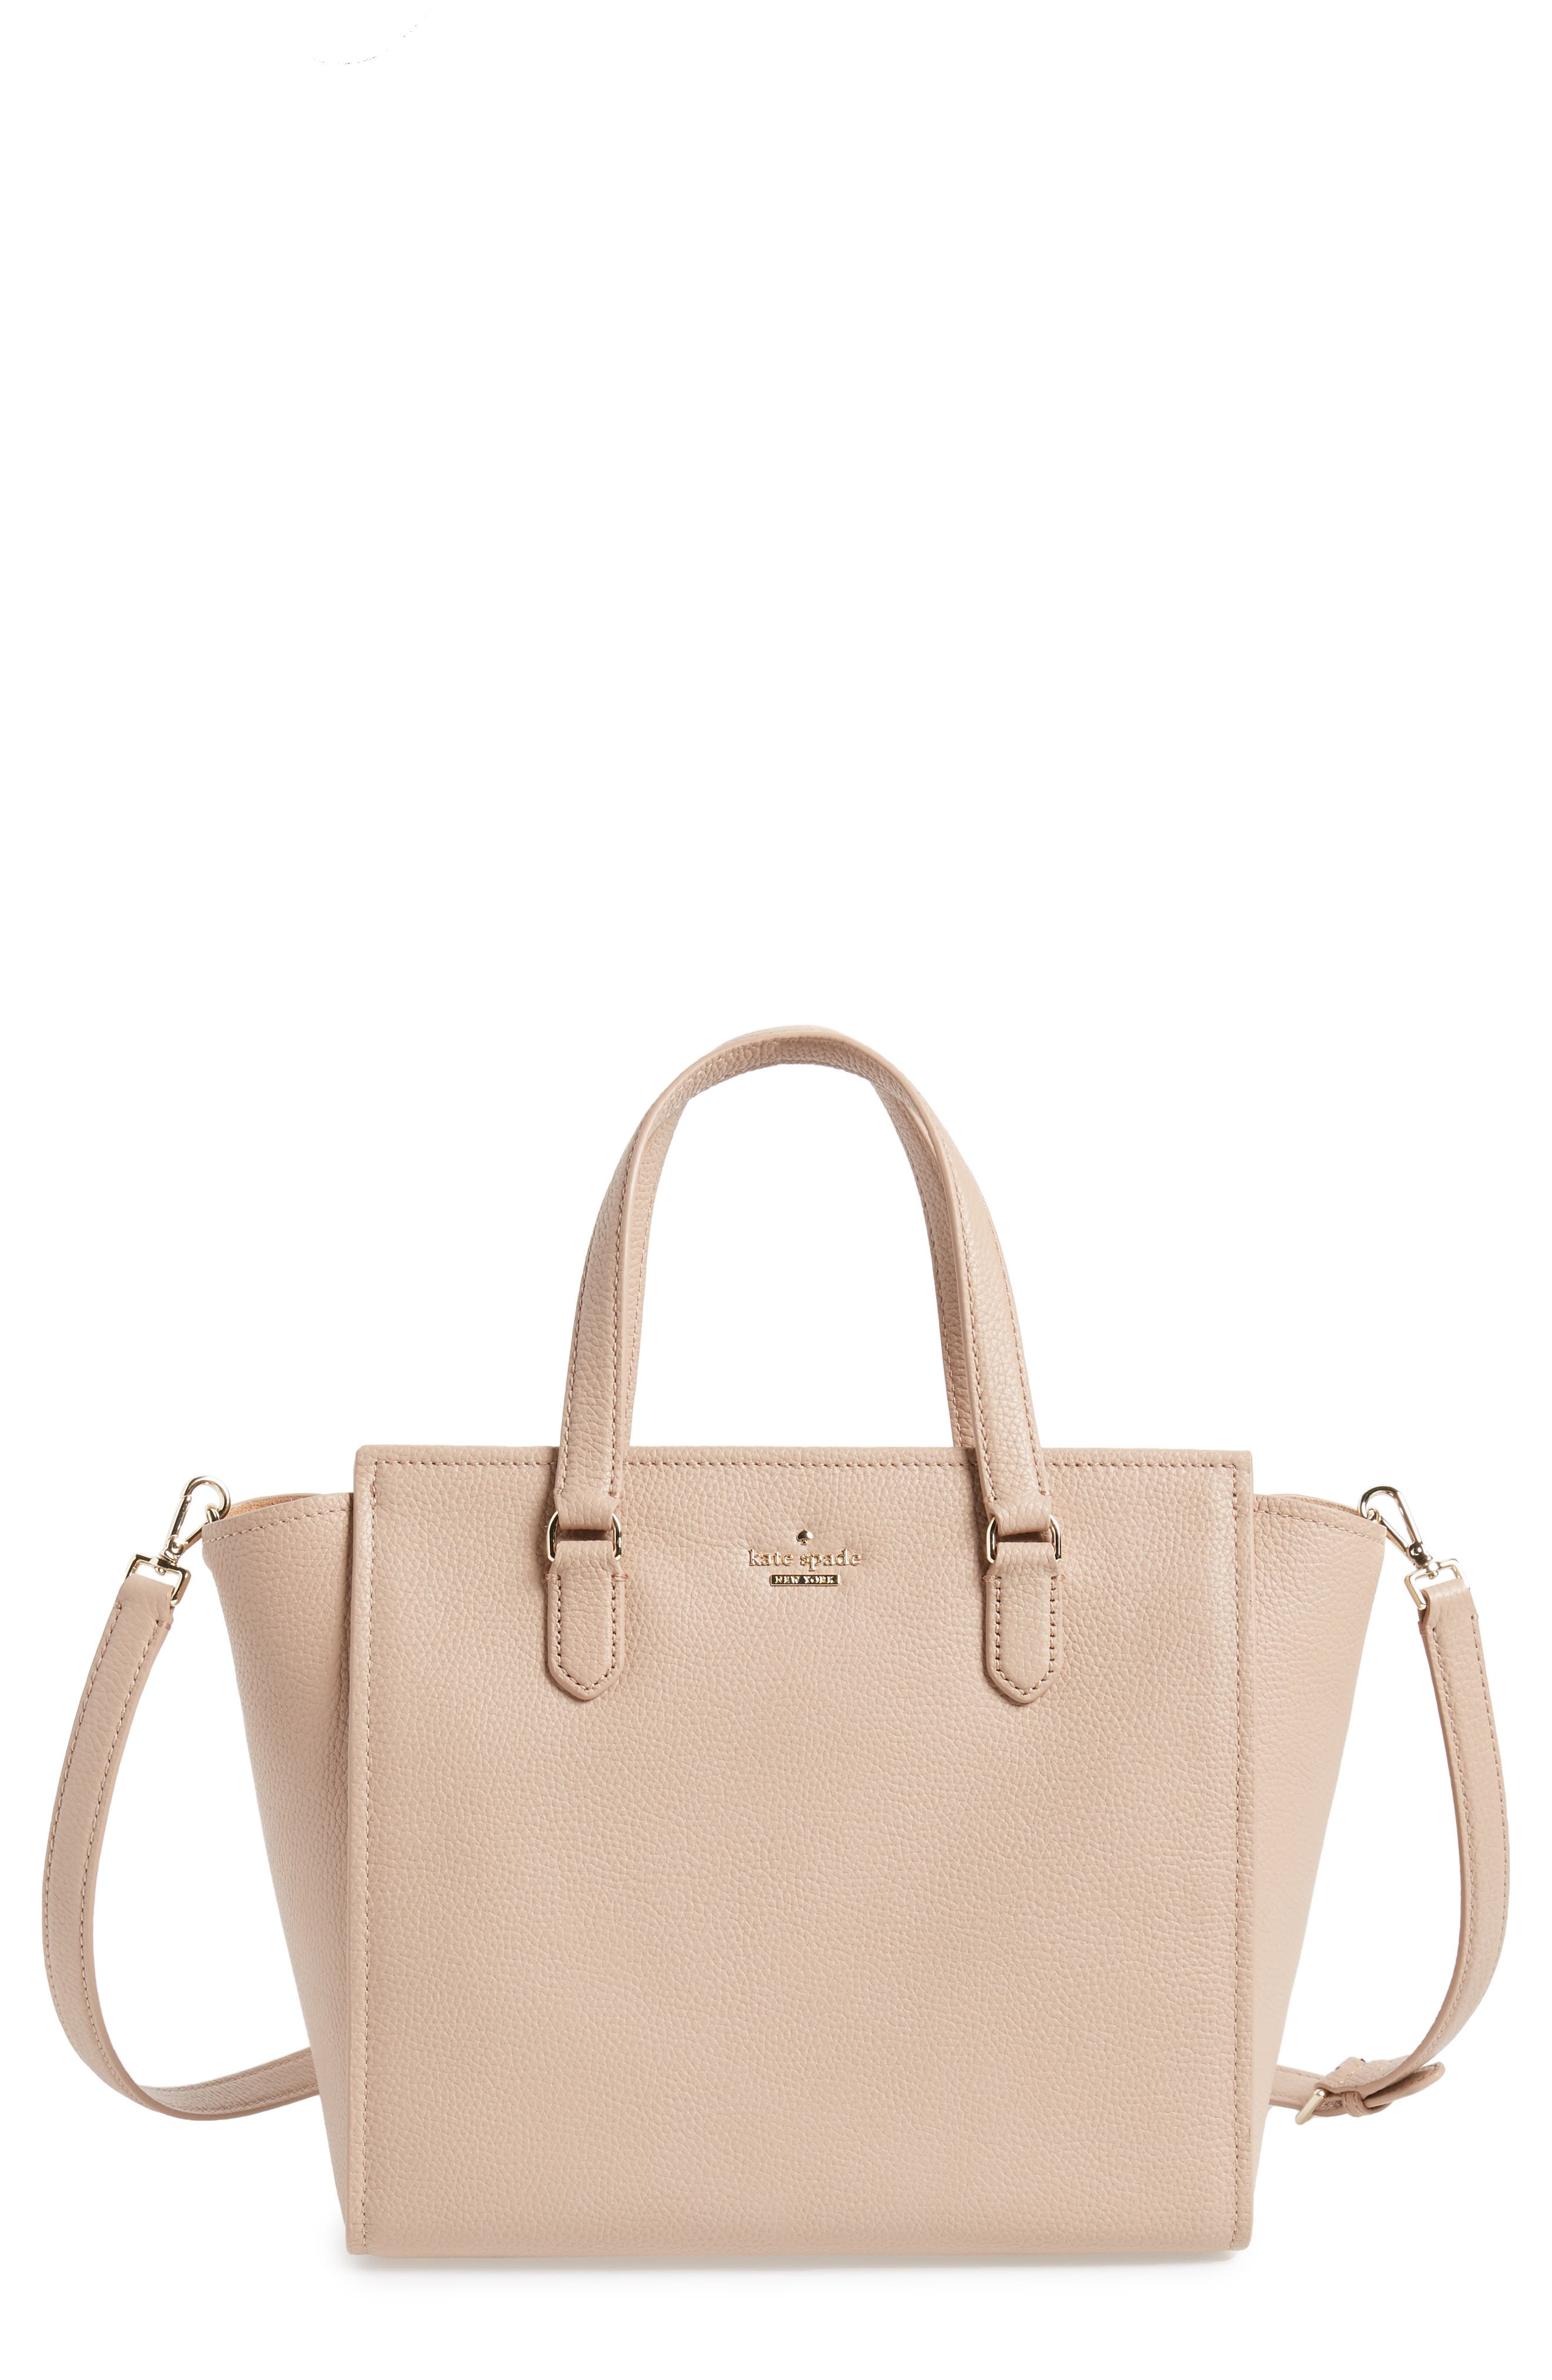 trent hill - hayden leather satchel,                         Main,                         color, Ginger Tea